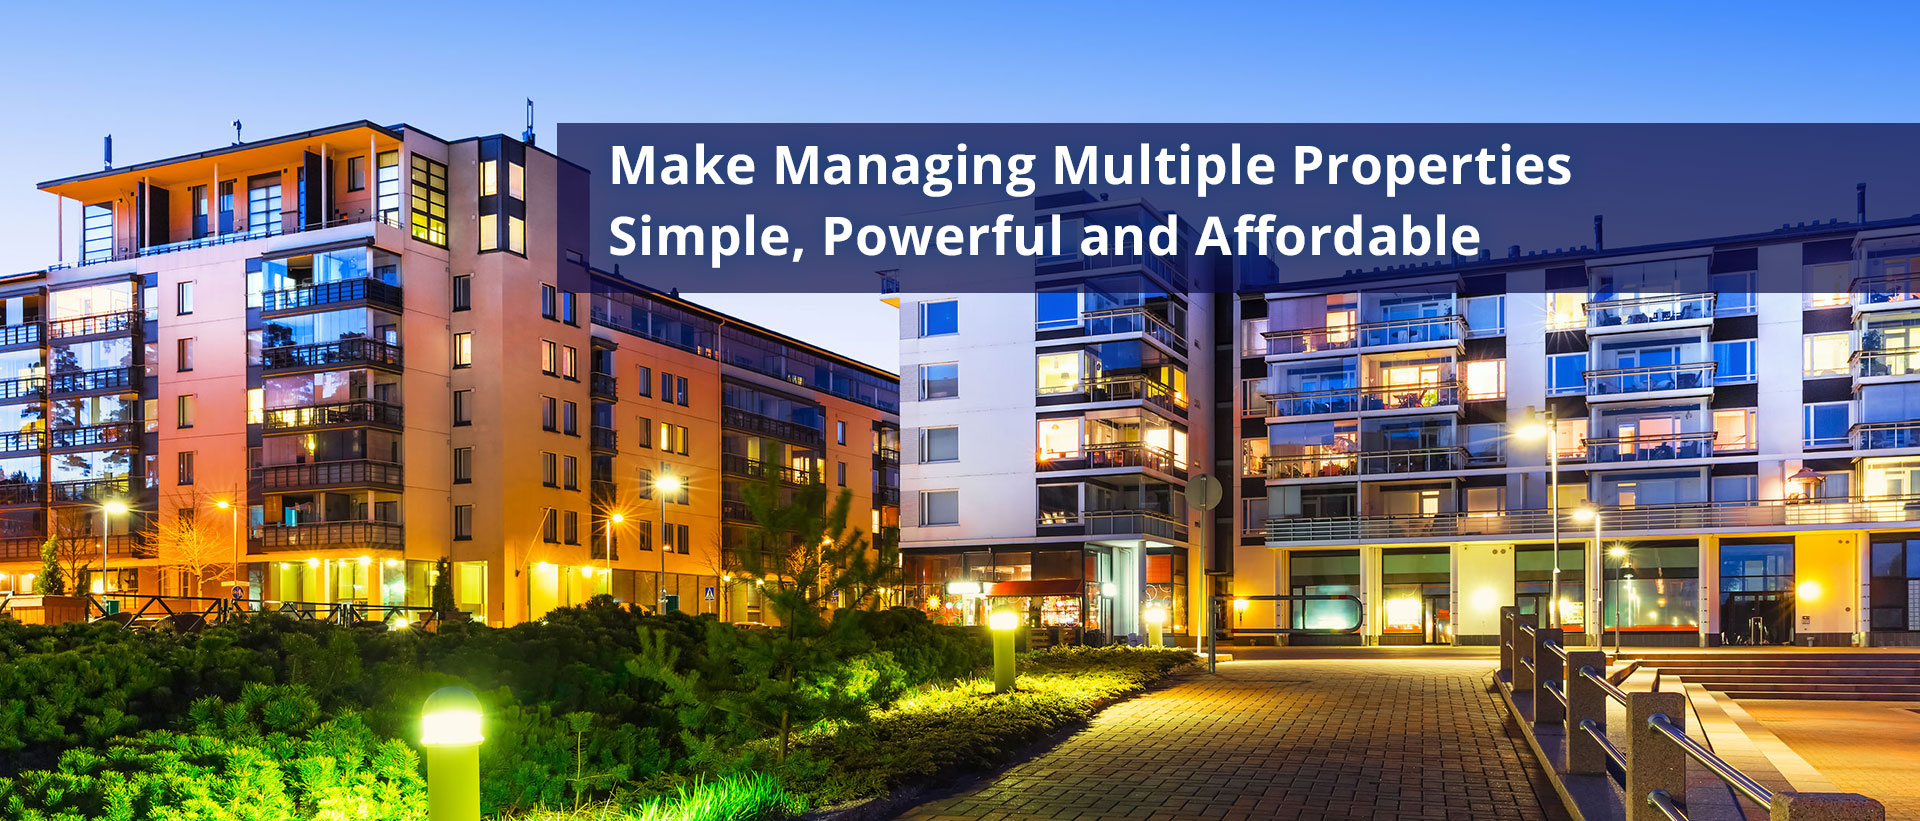 property management company using CHOPAS condo portal and homeowners association and condo association management software